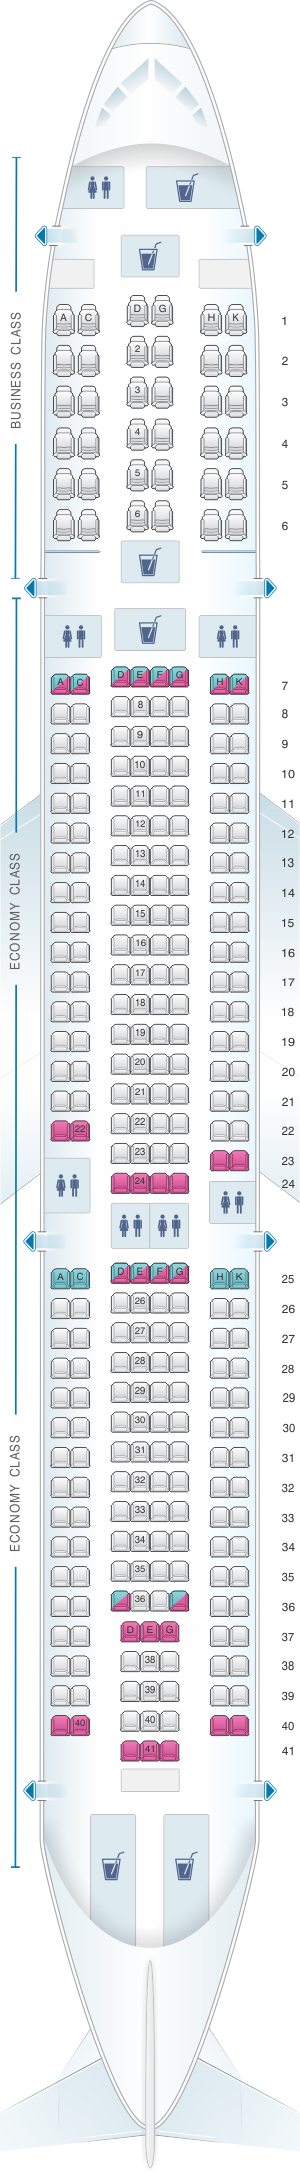 Seat map for Egyptair Airbus A330 300